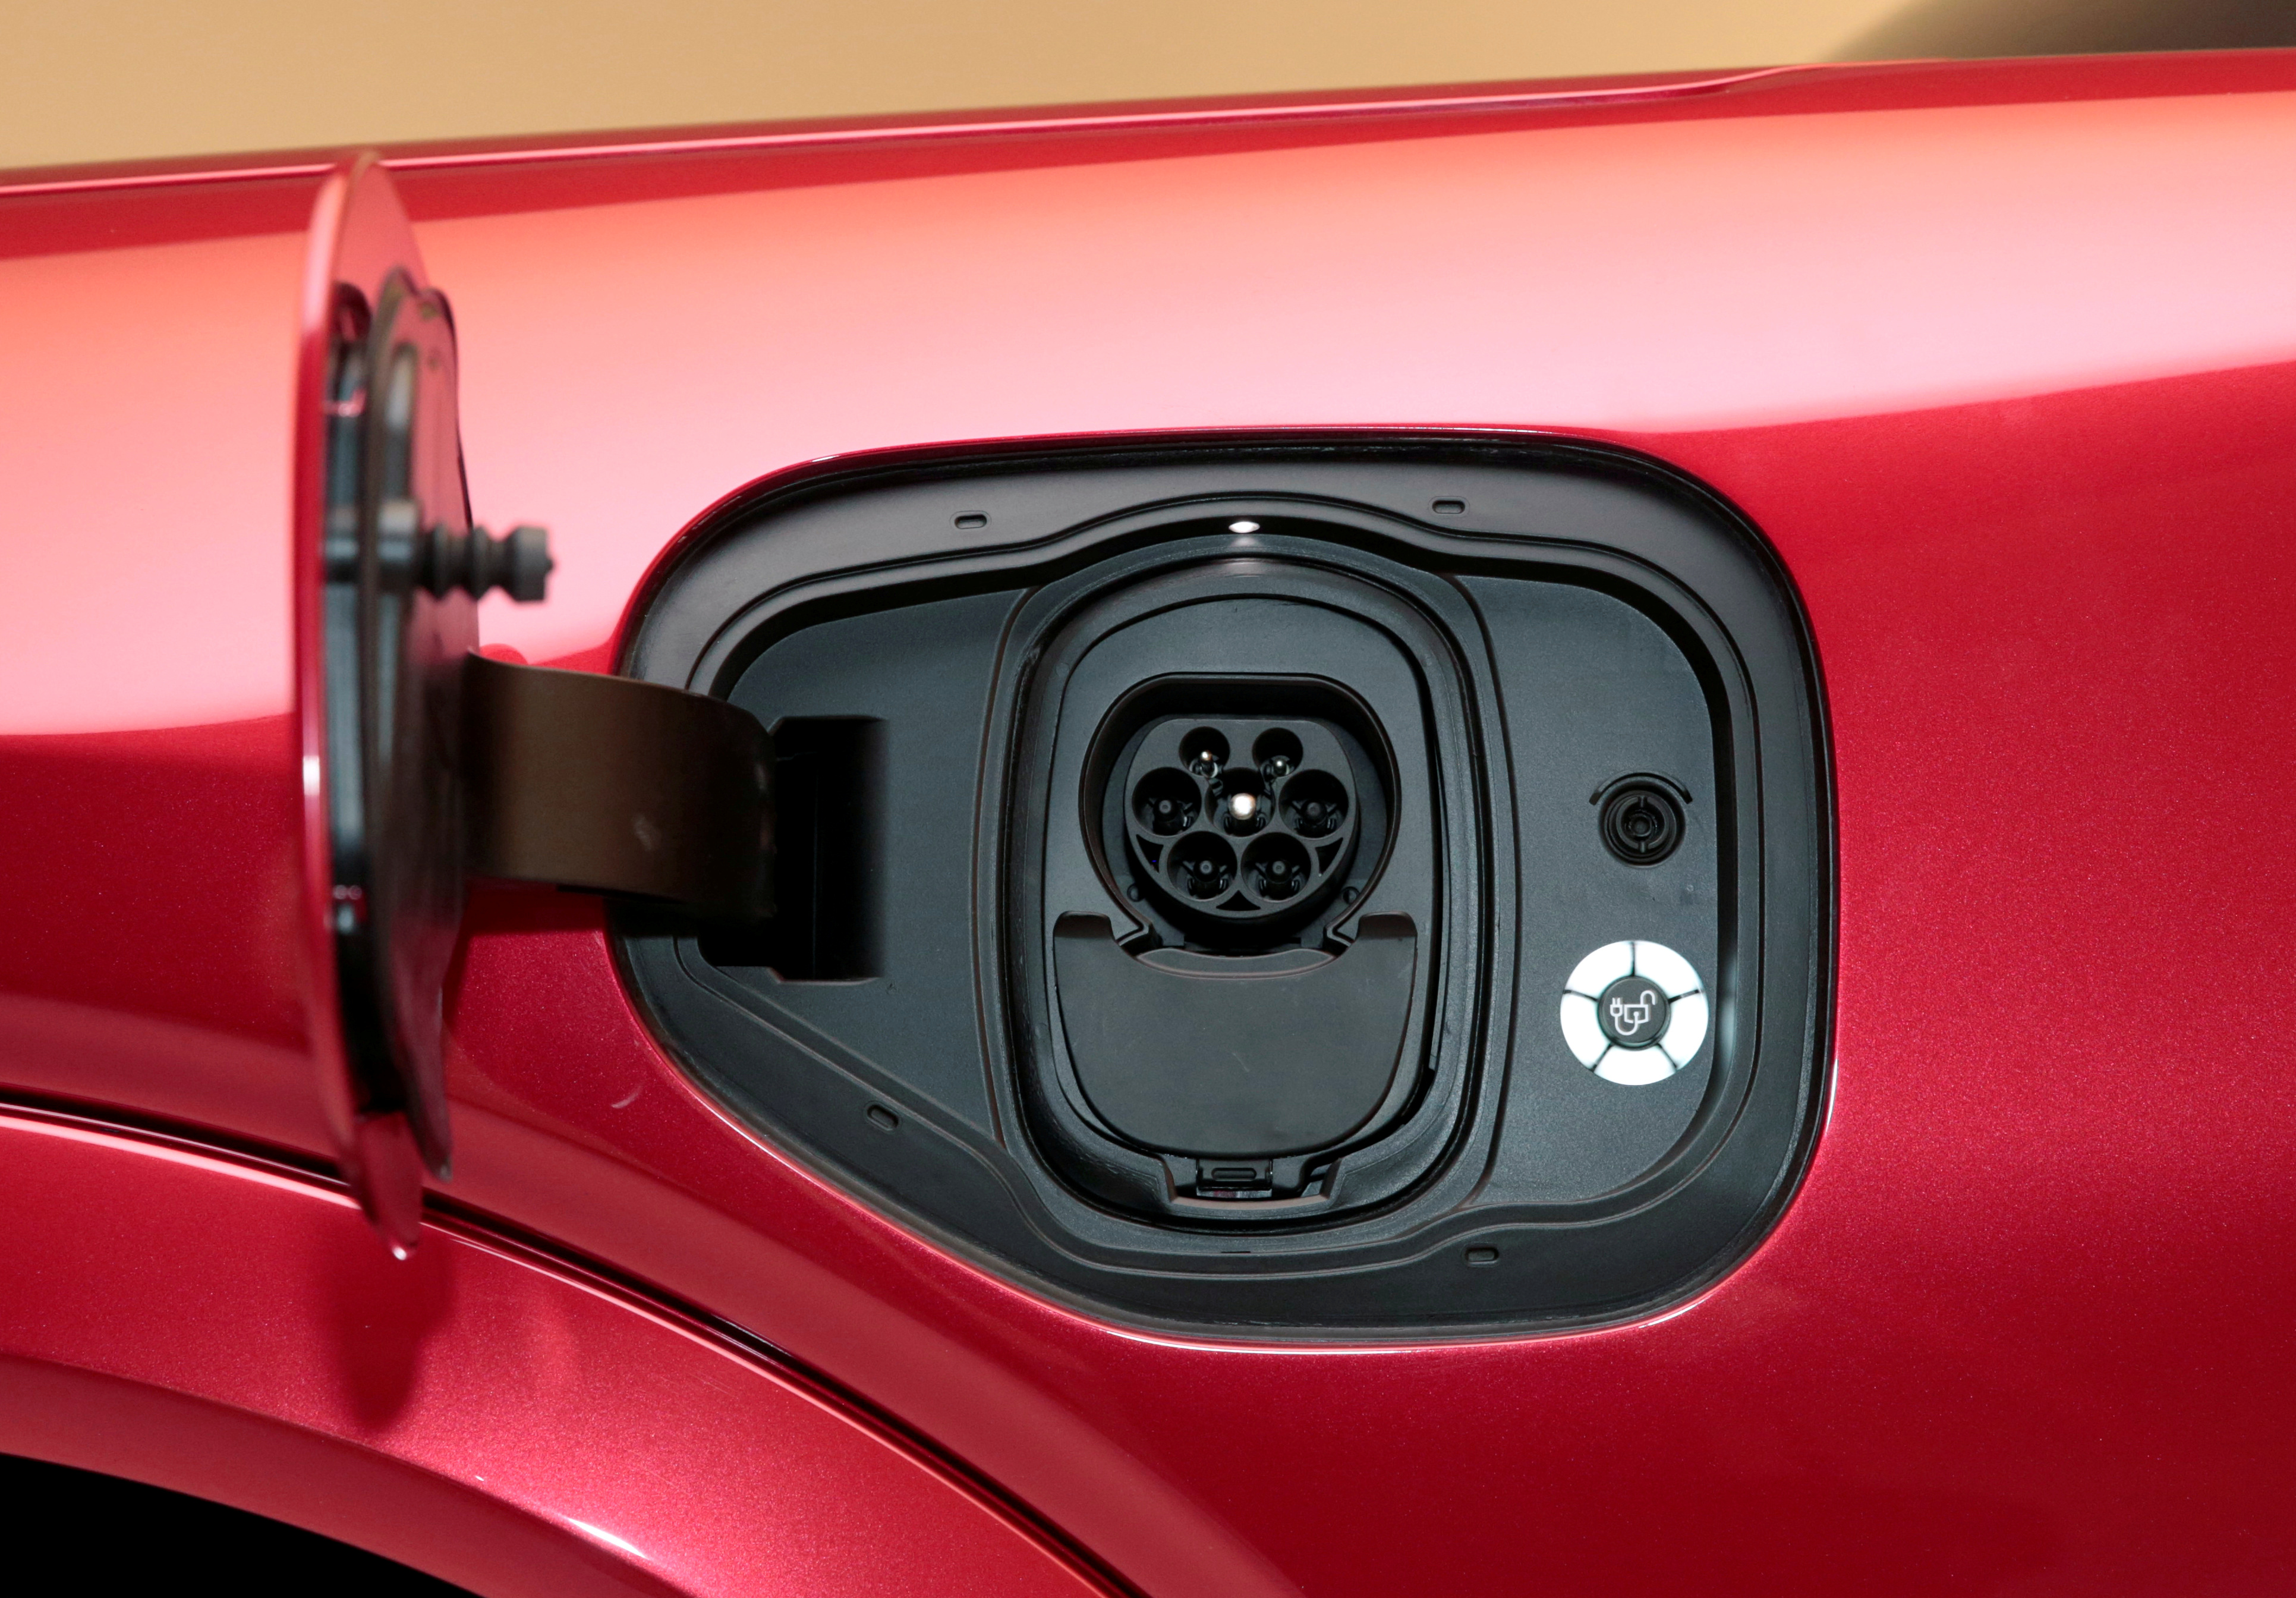 The charging socket is seen on Ford Motor Co's all-new electric Mustang Mach-E vehicle during a photo shoot at a studio in Warren, Michigan, U.S. October 29, 2019.  REUTERS/Rebecca Cook